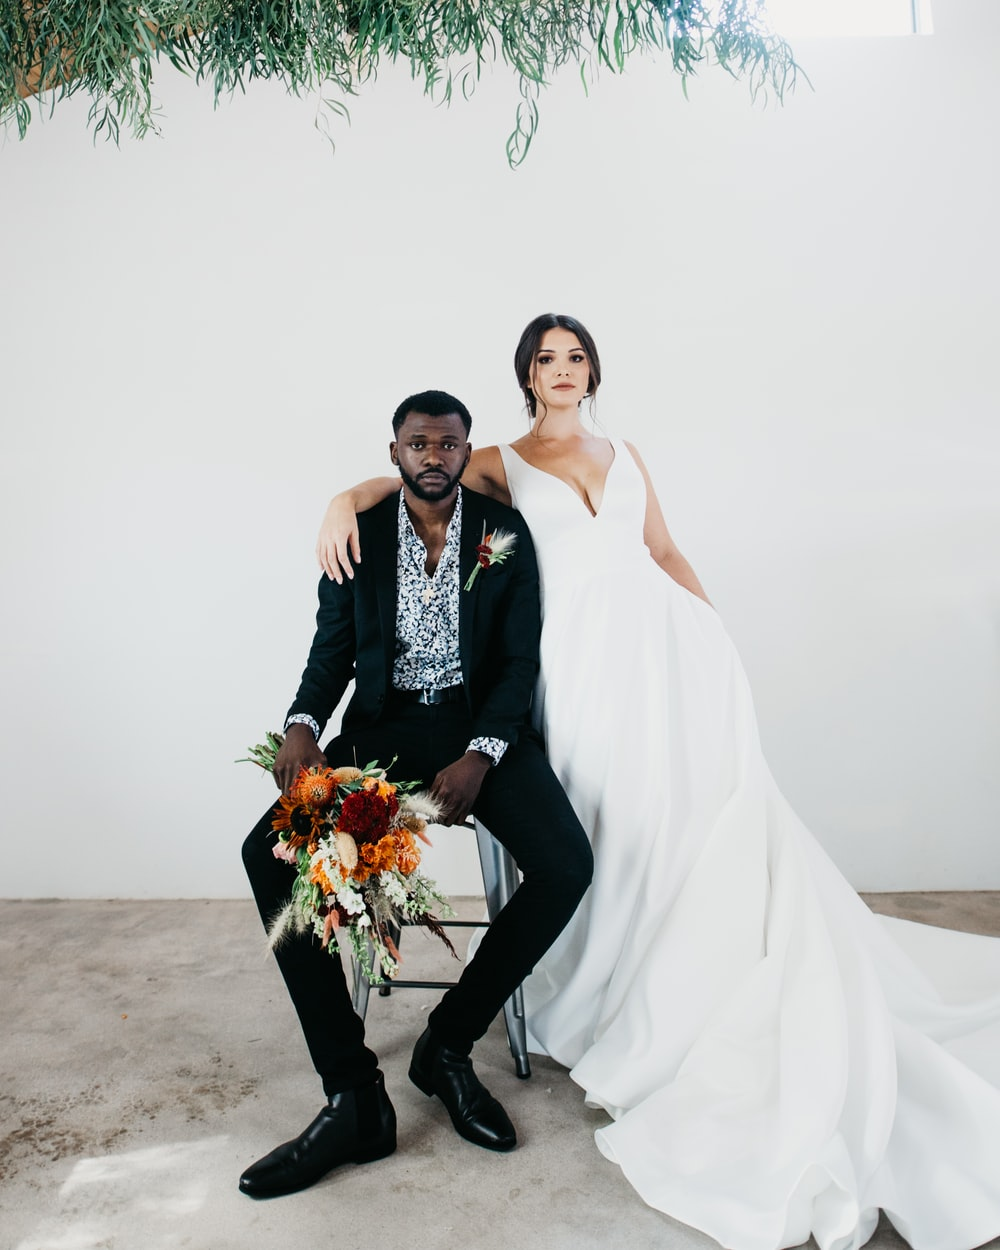 500 Wedding Pictures Download Free Images Stock Photos On Unsplash